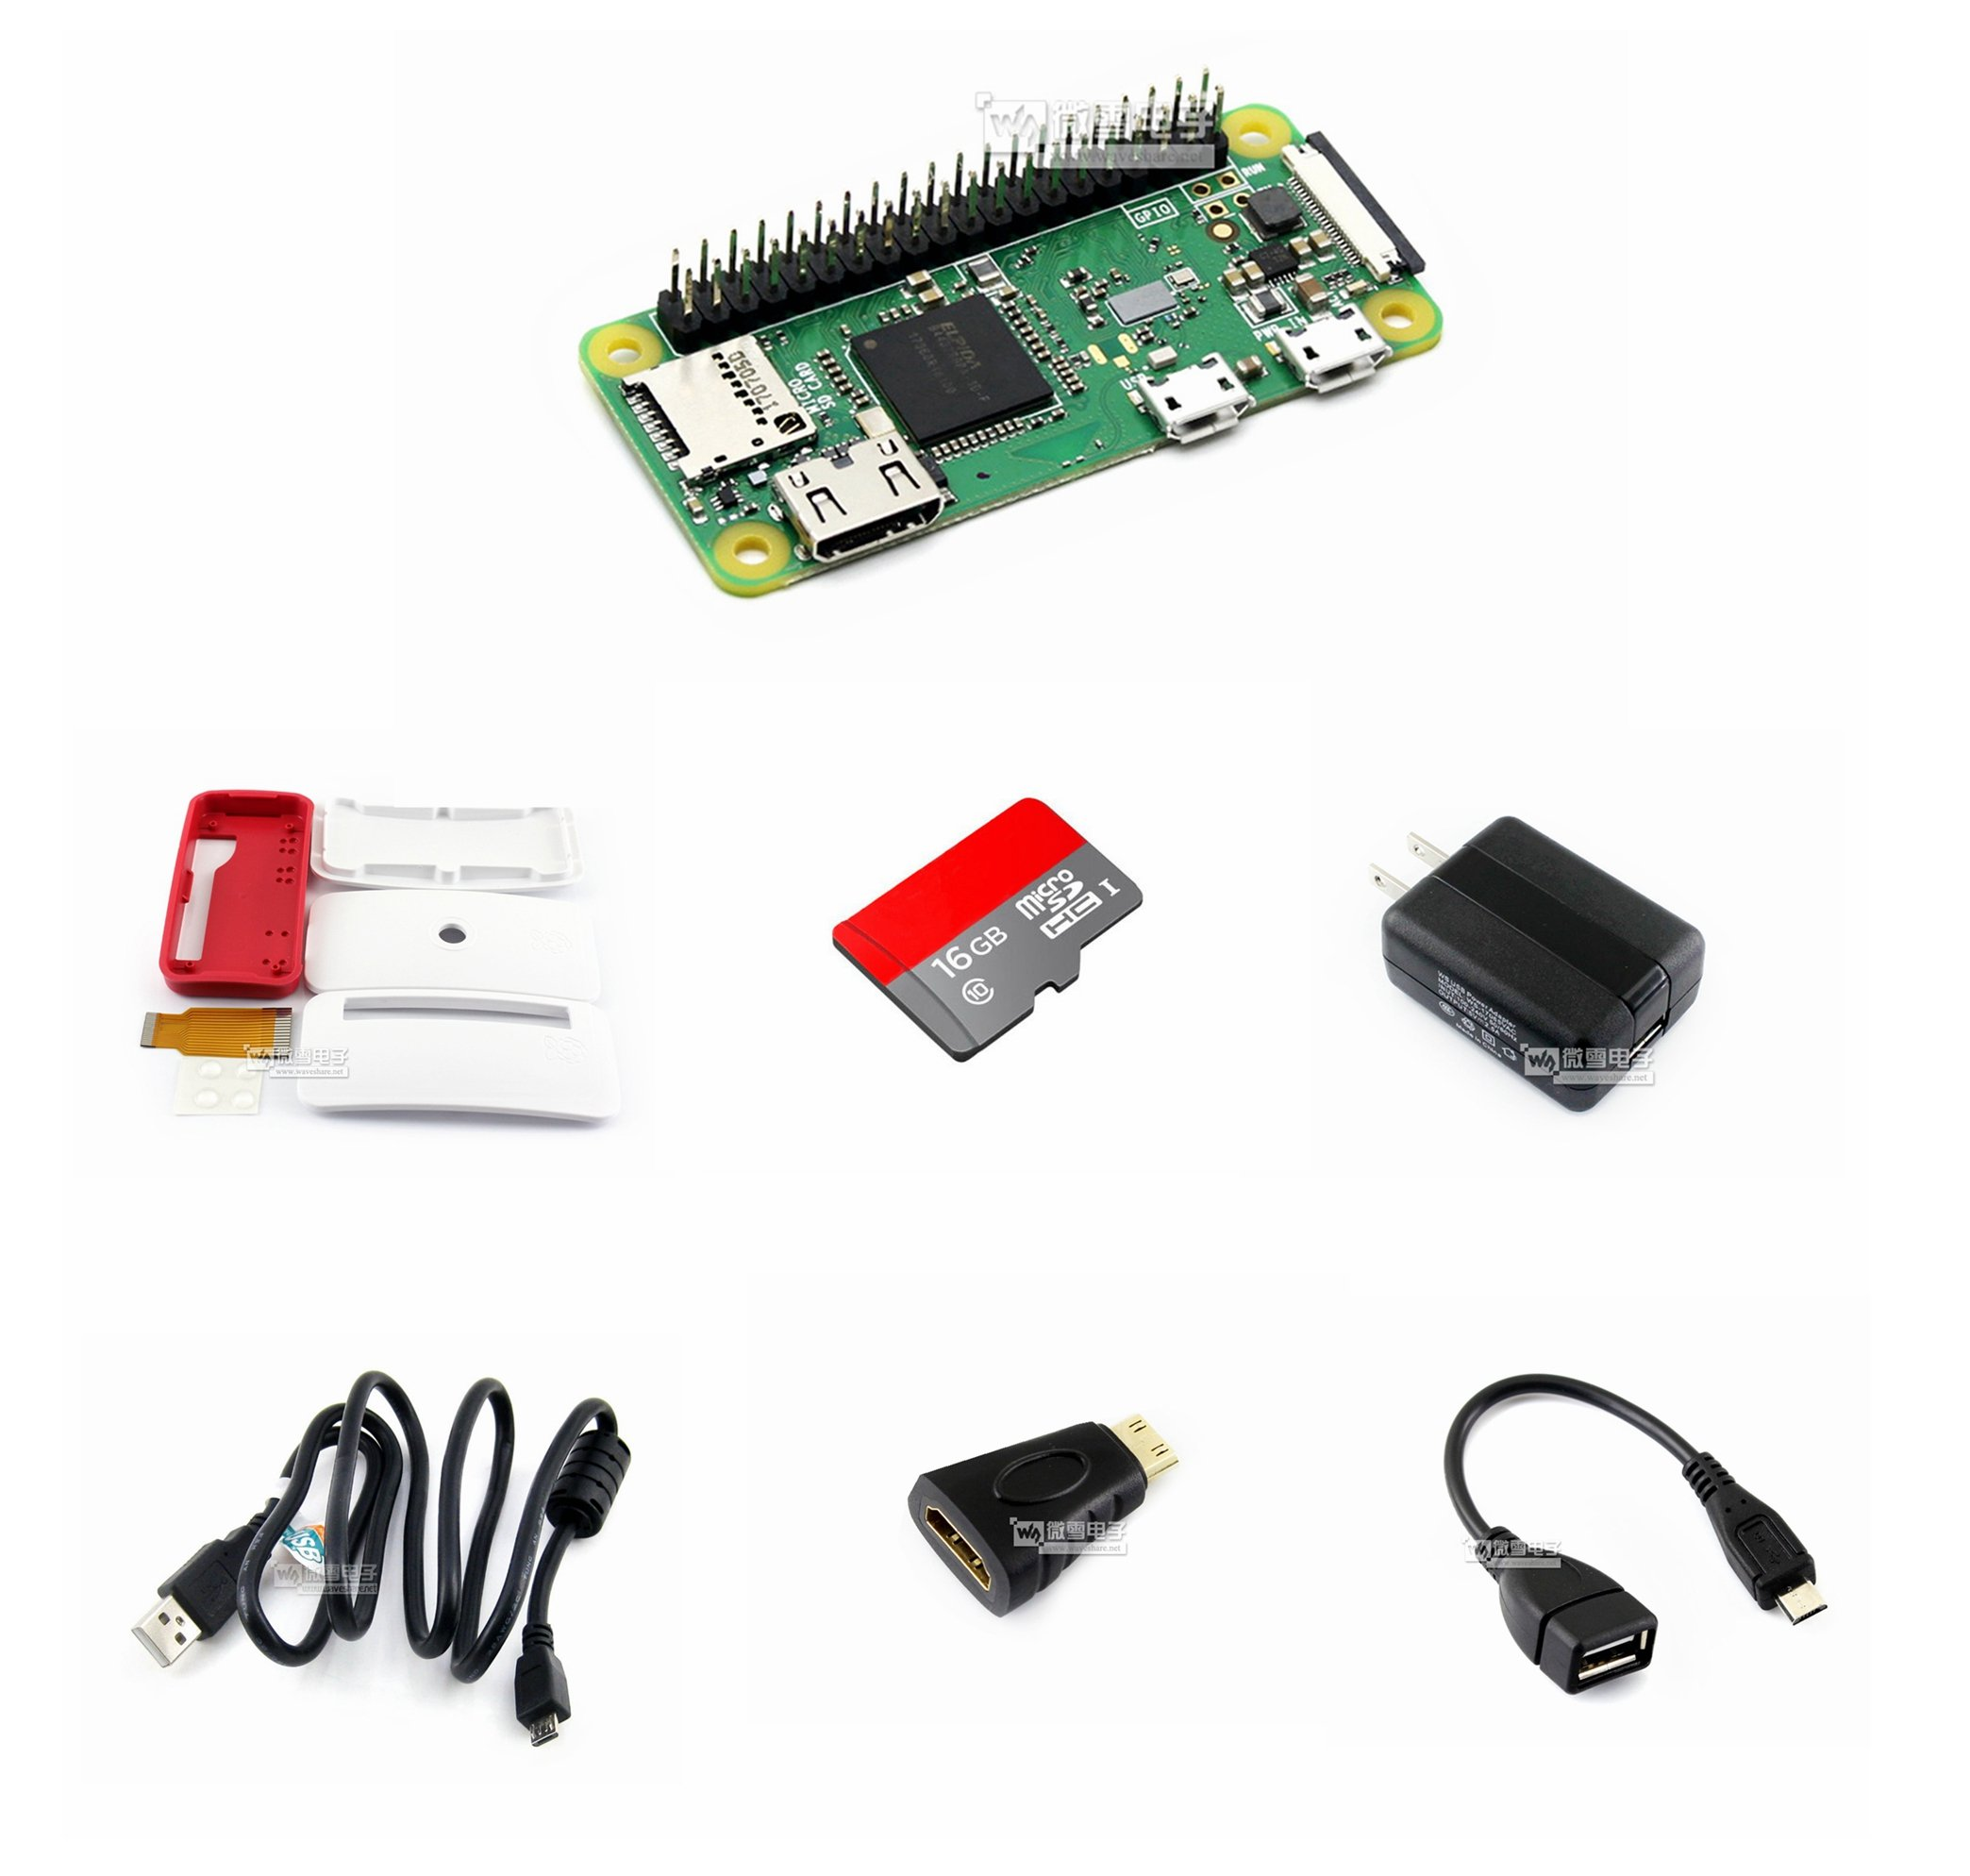 Development Kit Basic Components@Pzsmocn Raspberry Pi Zero WH,with built-in WiFi,Bluetooth,40PIN pre-soldered GPIO Headers.16GB Micro SD Card,Power Adapter,Official Case,keep your Pi Zero clean safe. by Pzsmocn